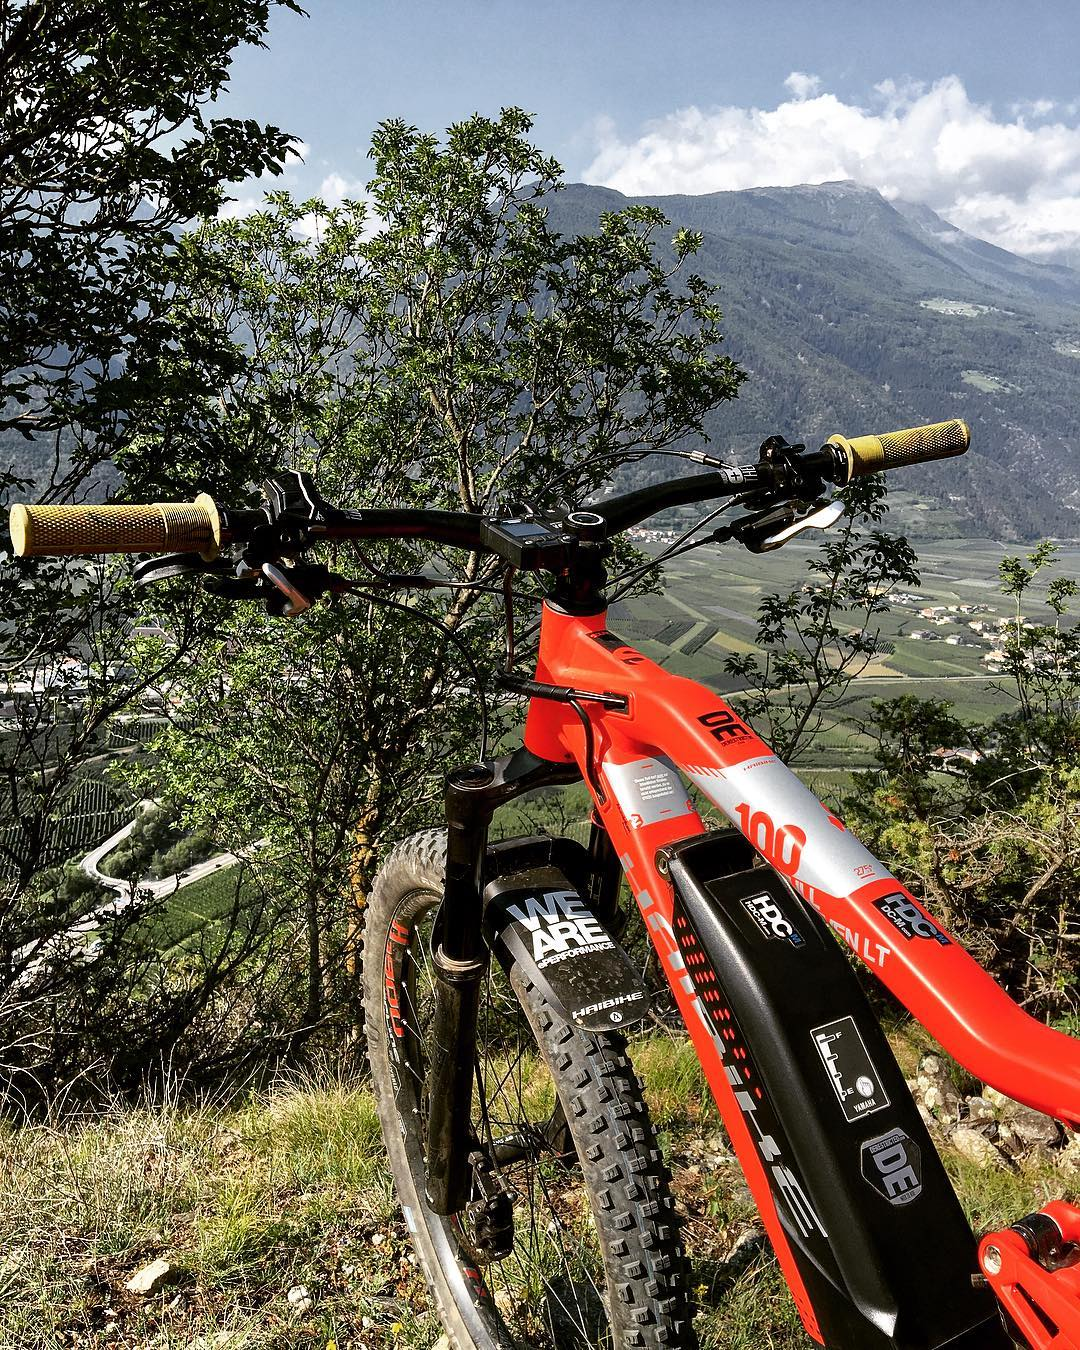 The new 2018 SDURO FullSeven LT 10.0. Top of the line trail bike pimped up with some deathgrips. #haibike #ridewithfriends #emountainbike #emtb #ebike #deathgrips #latsch #italy